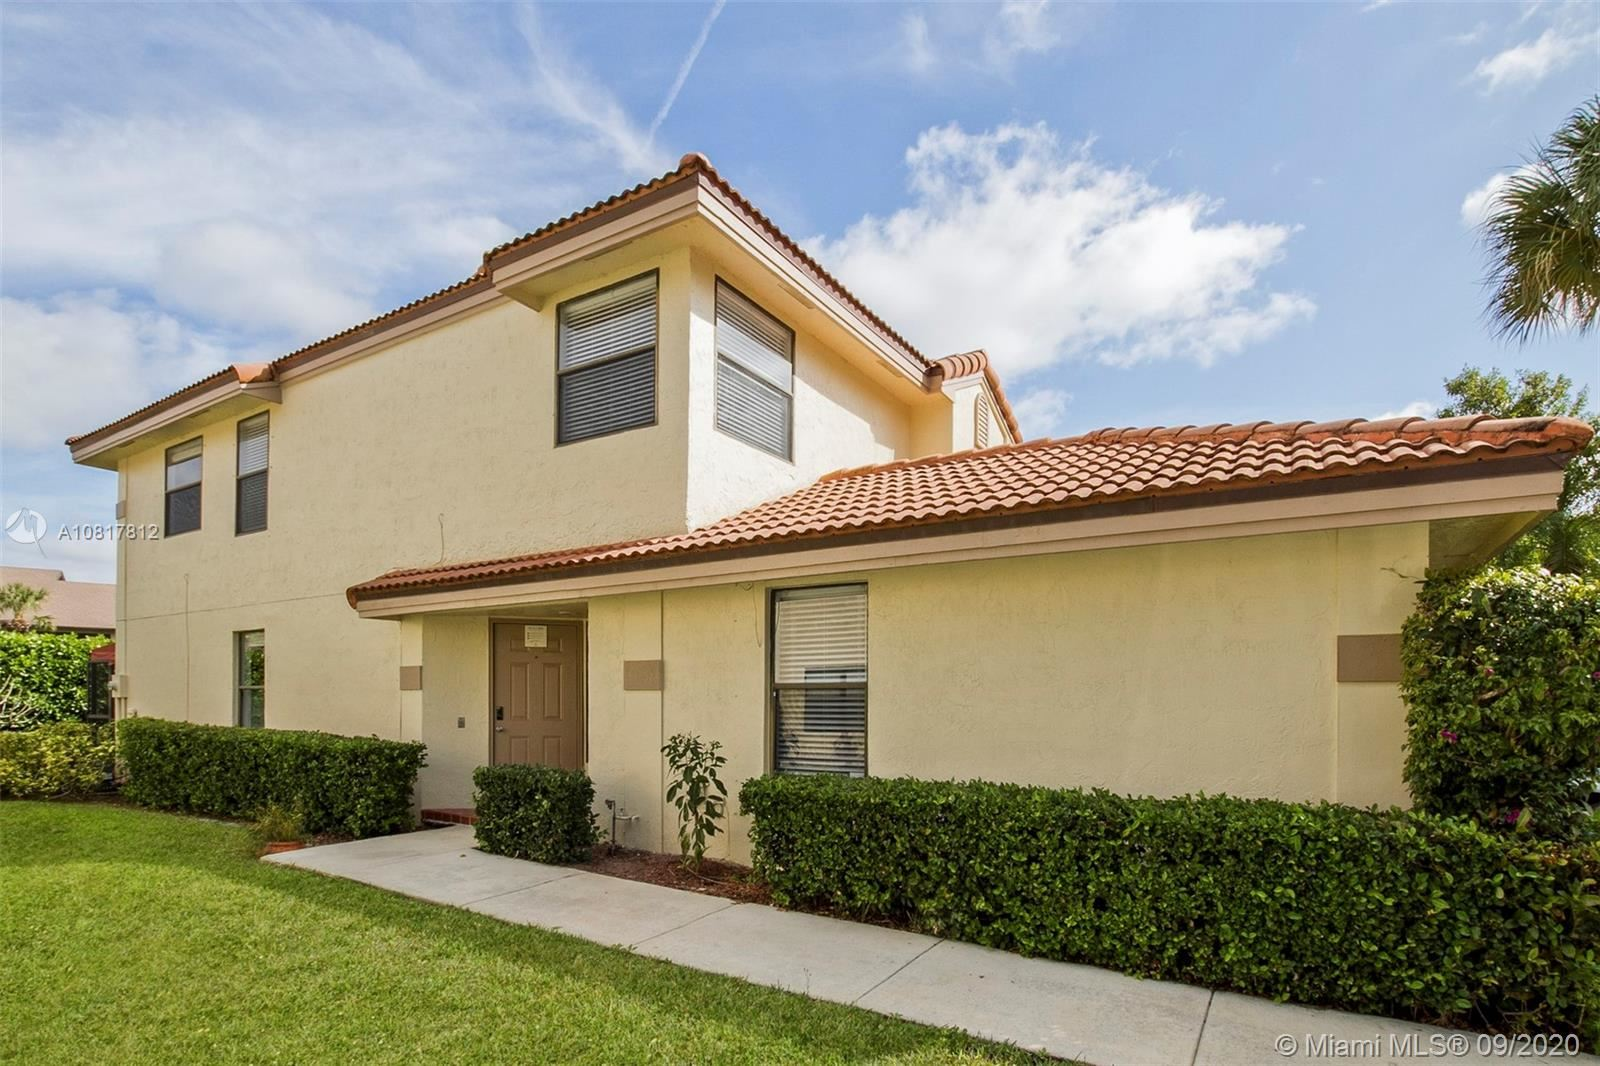 12196 Sag Harbor Ct #6, Wellington, FL 33414 - #: A10817812